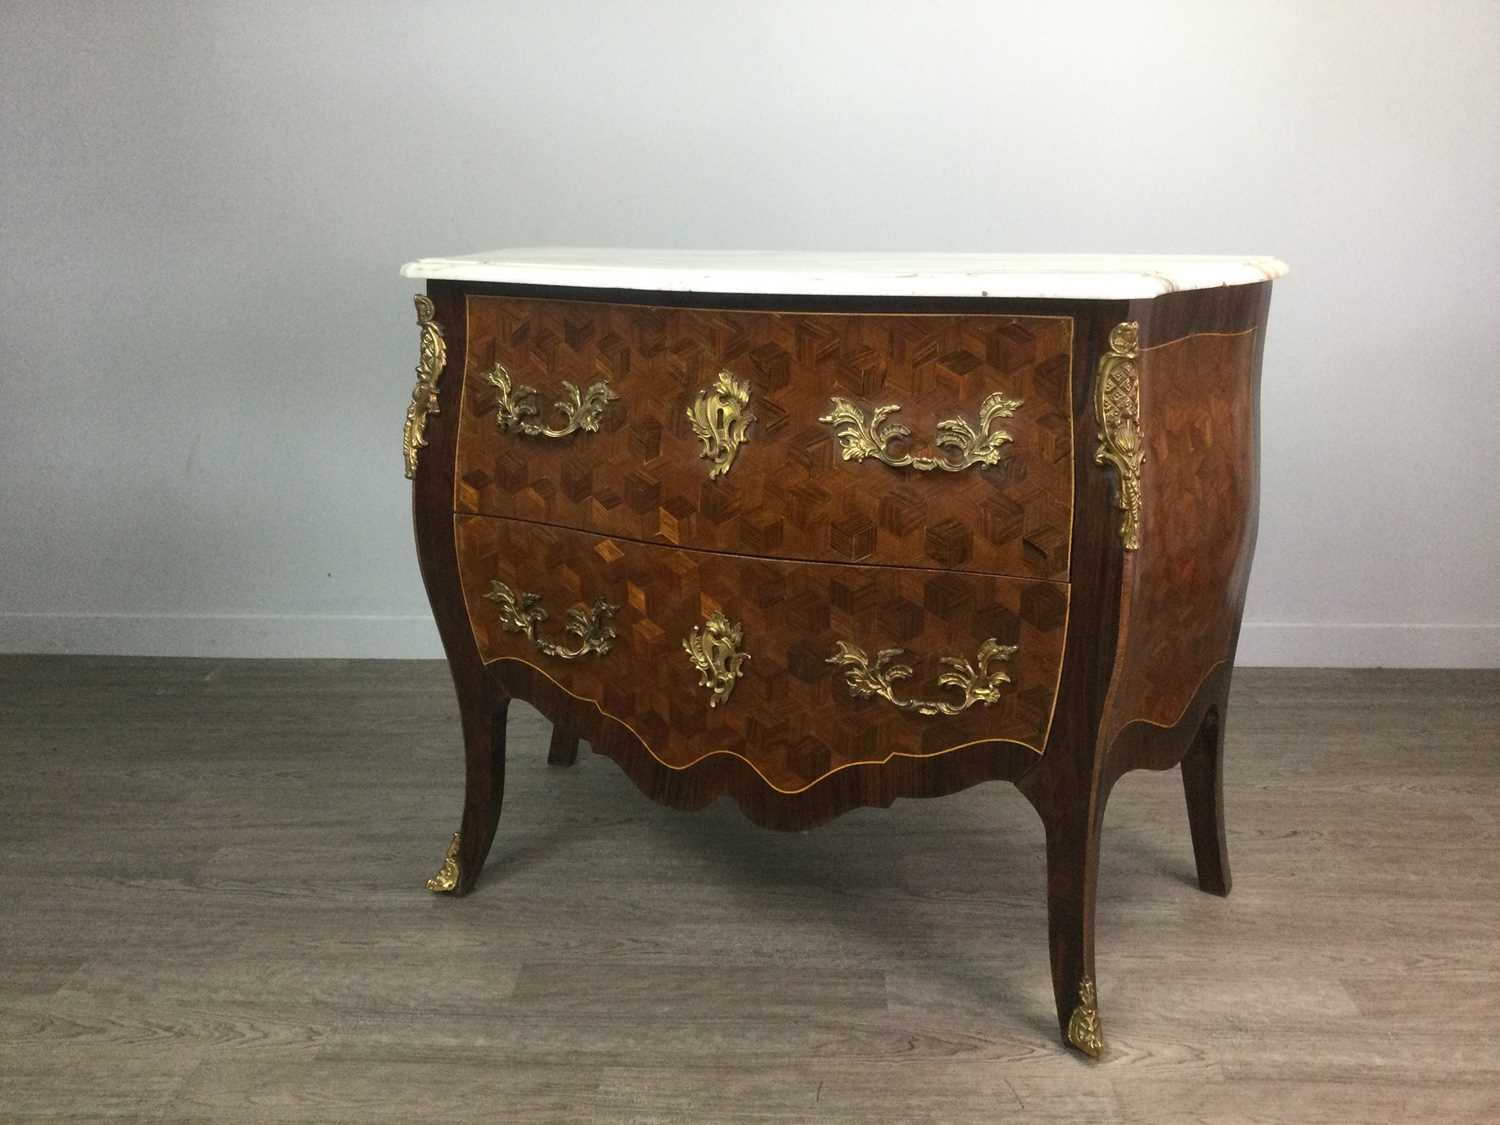 Lot 731 - AN IMPRESSIVE GILT METAL MOUNTED ROSEWOOD AND KINGWOOD MARQUETRY COMMODE OF LOUIS XV DESIGN